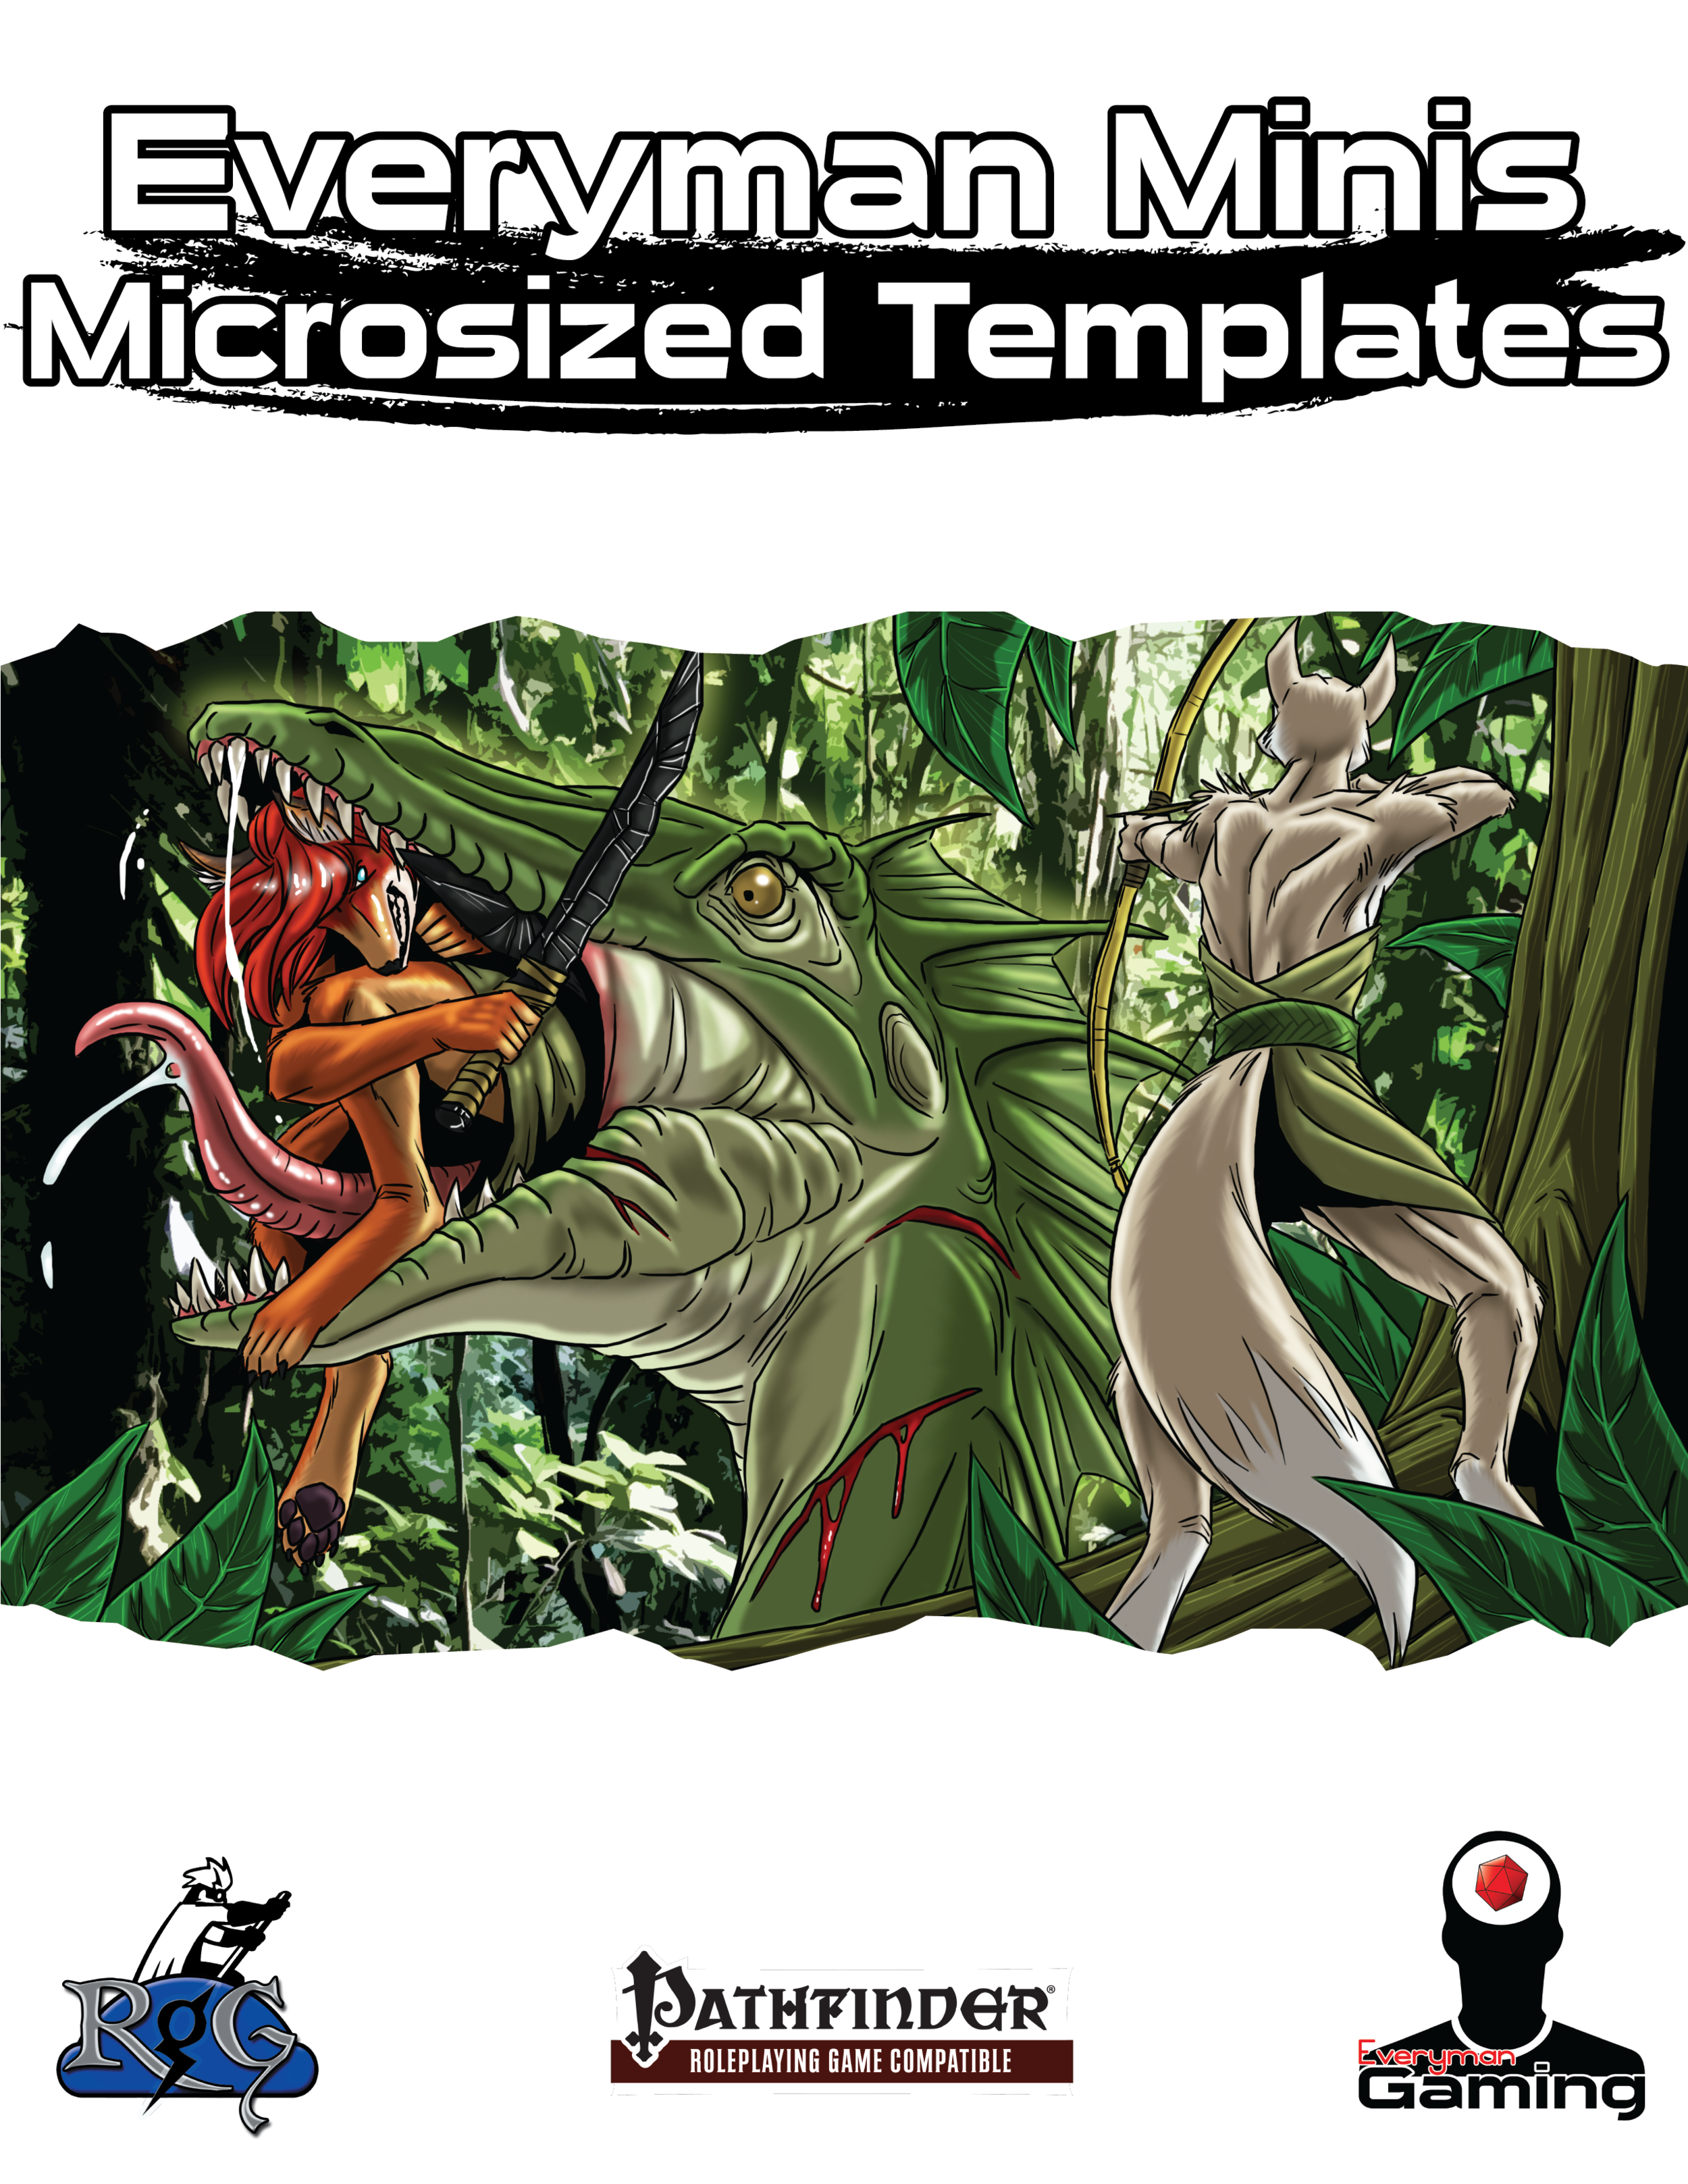 17 EMM Microsized Templates.png